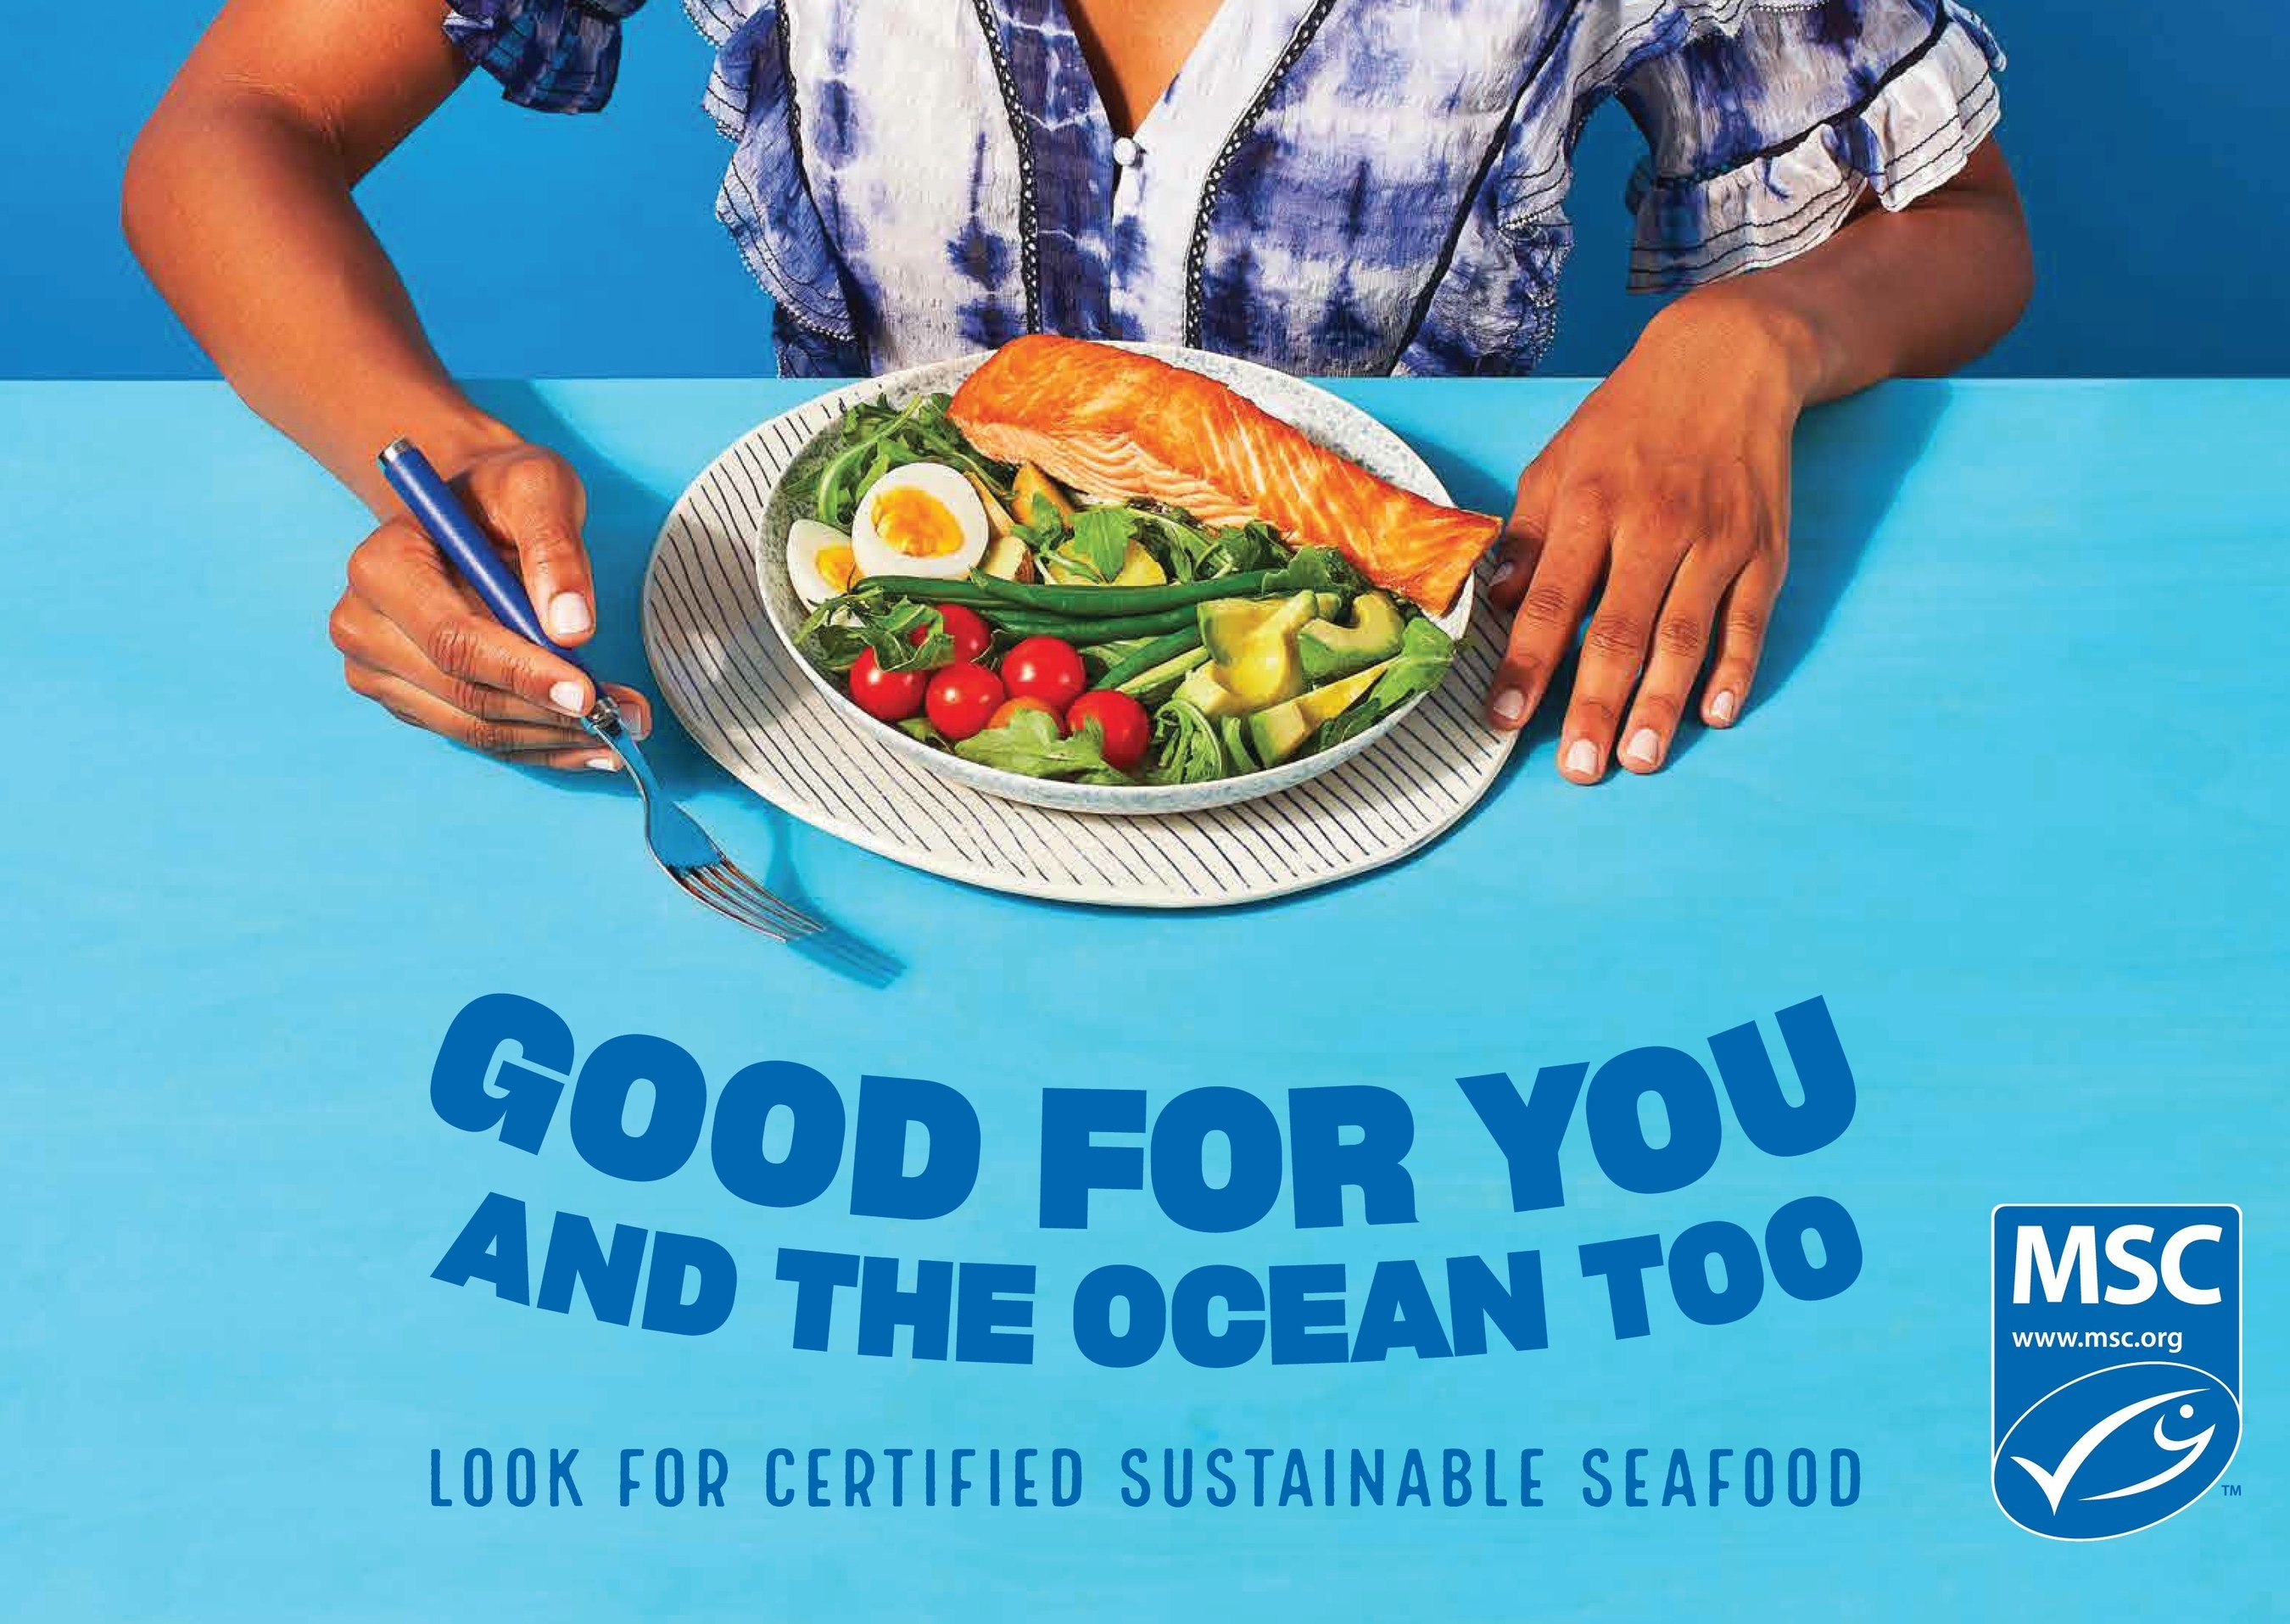 MSC Urging Americans to Choose Seafood Thats Good for You and the Ocean Too